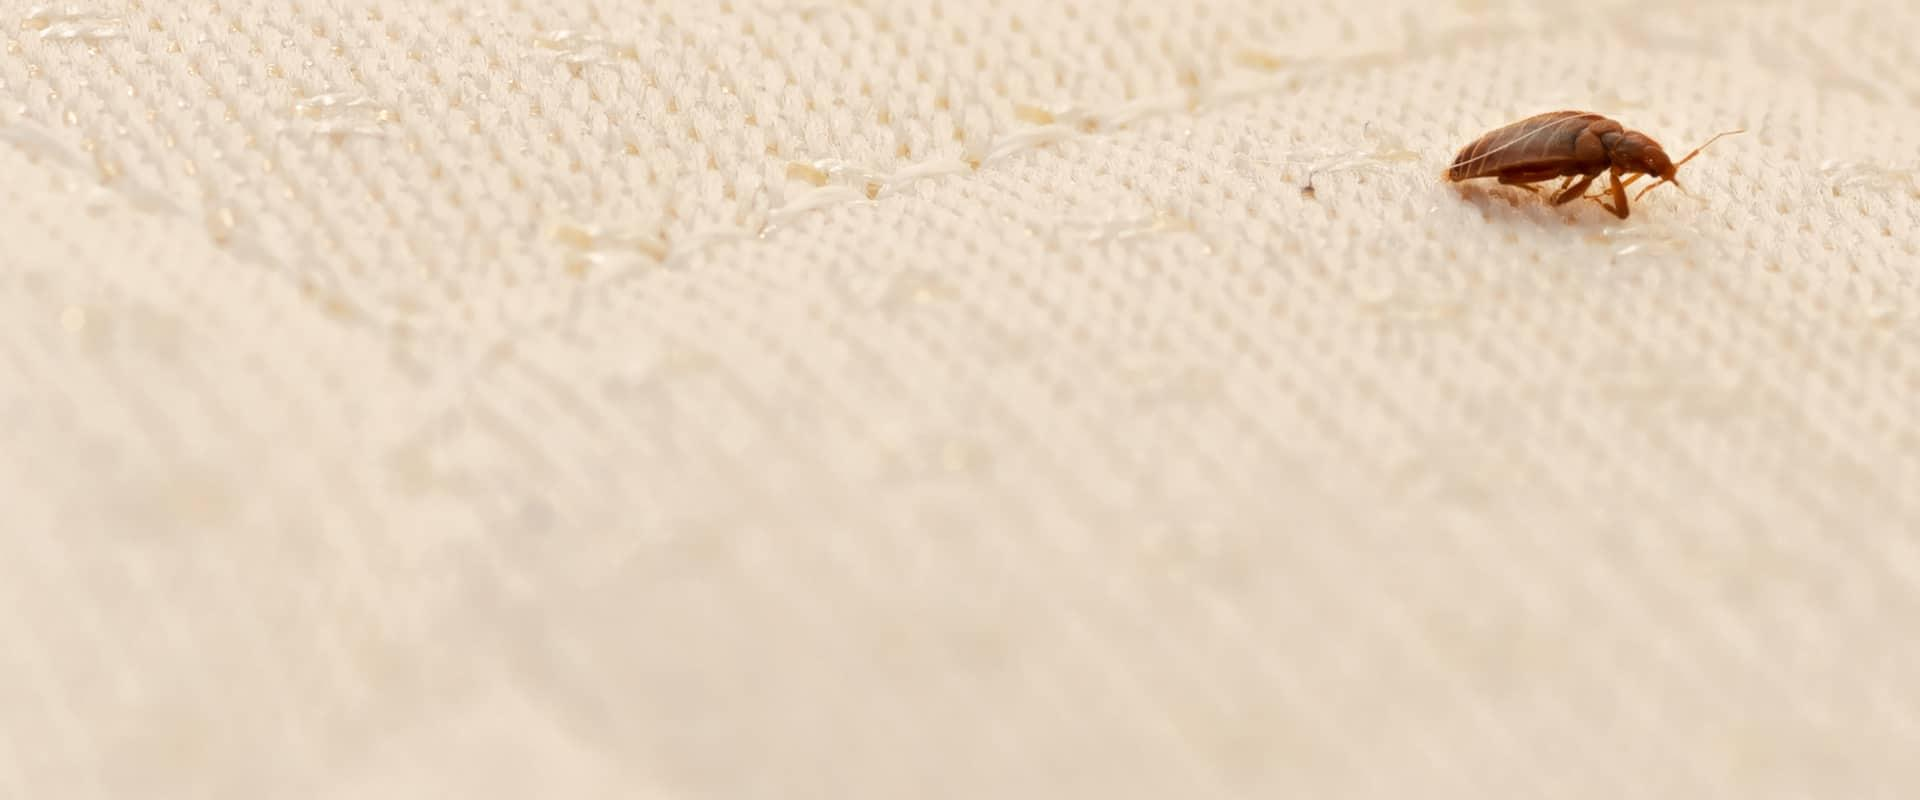 a bed bug crawling on a mattress in a home in richardson texas